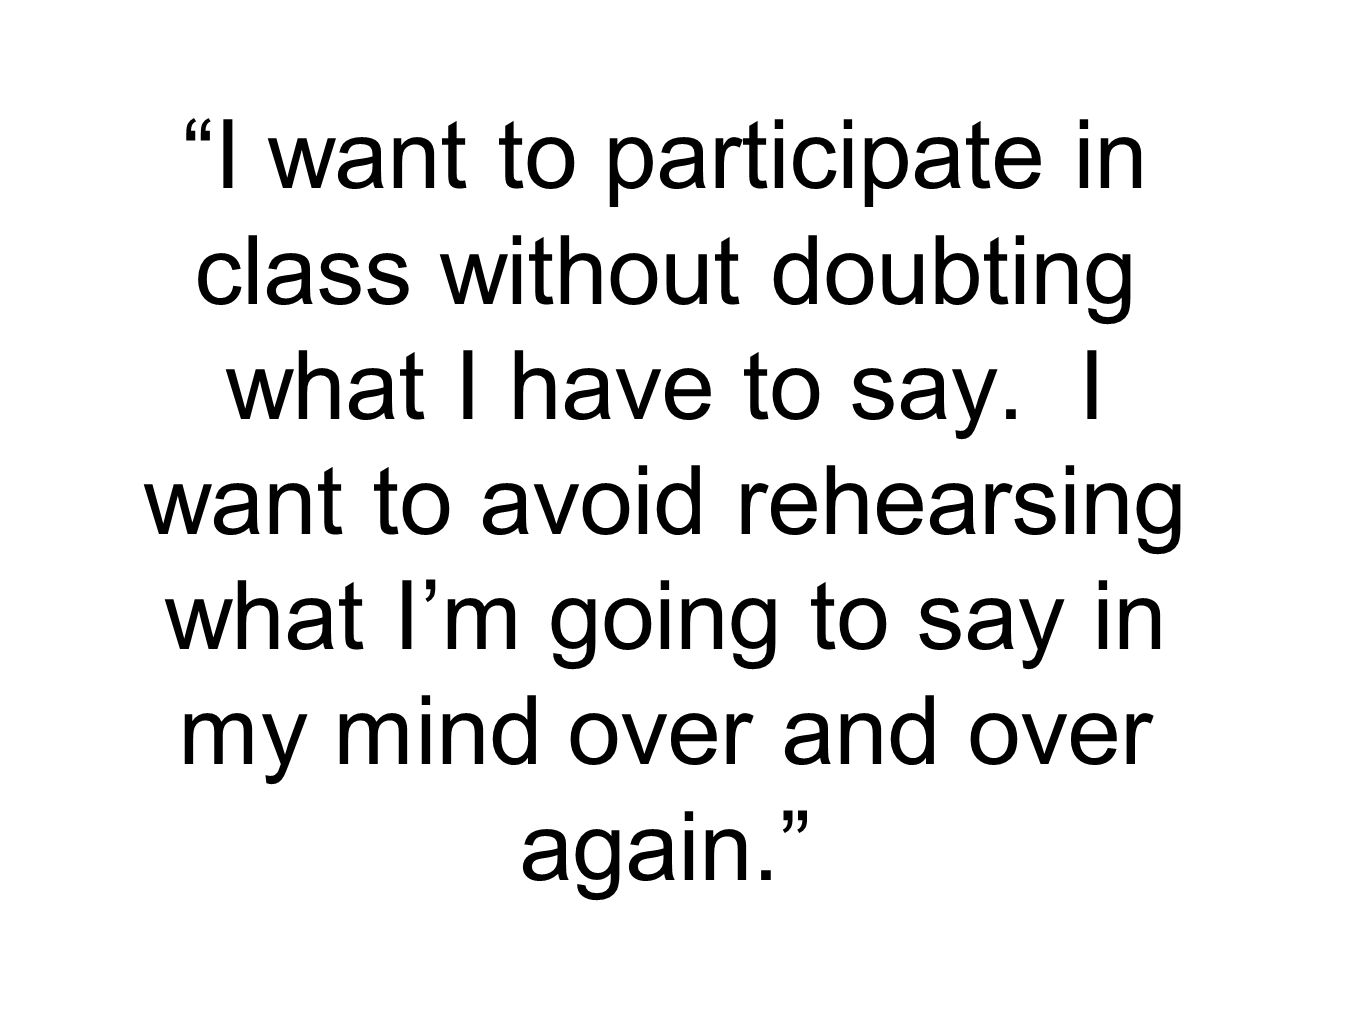 I want to participate in class without doubting what I have to say.